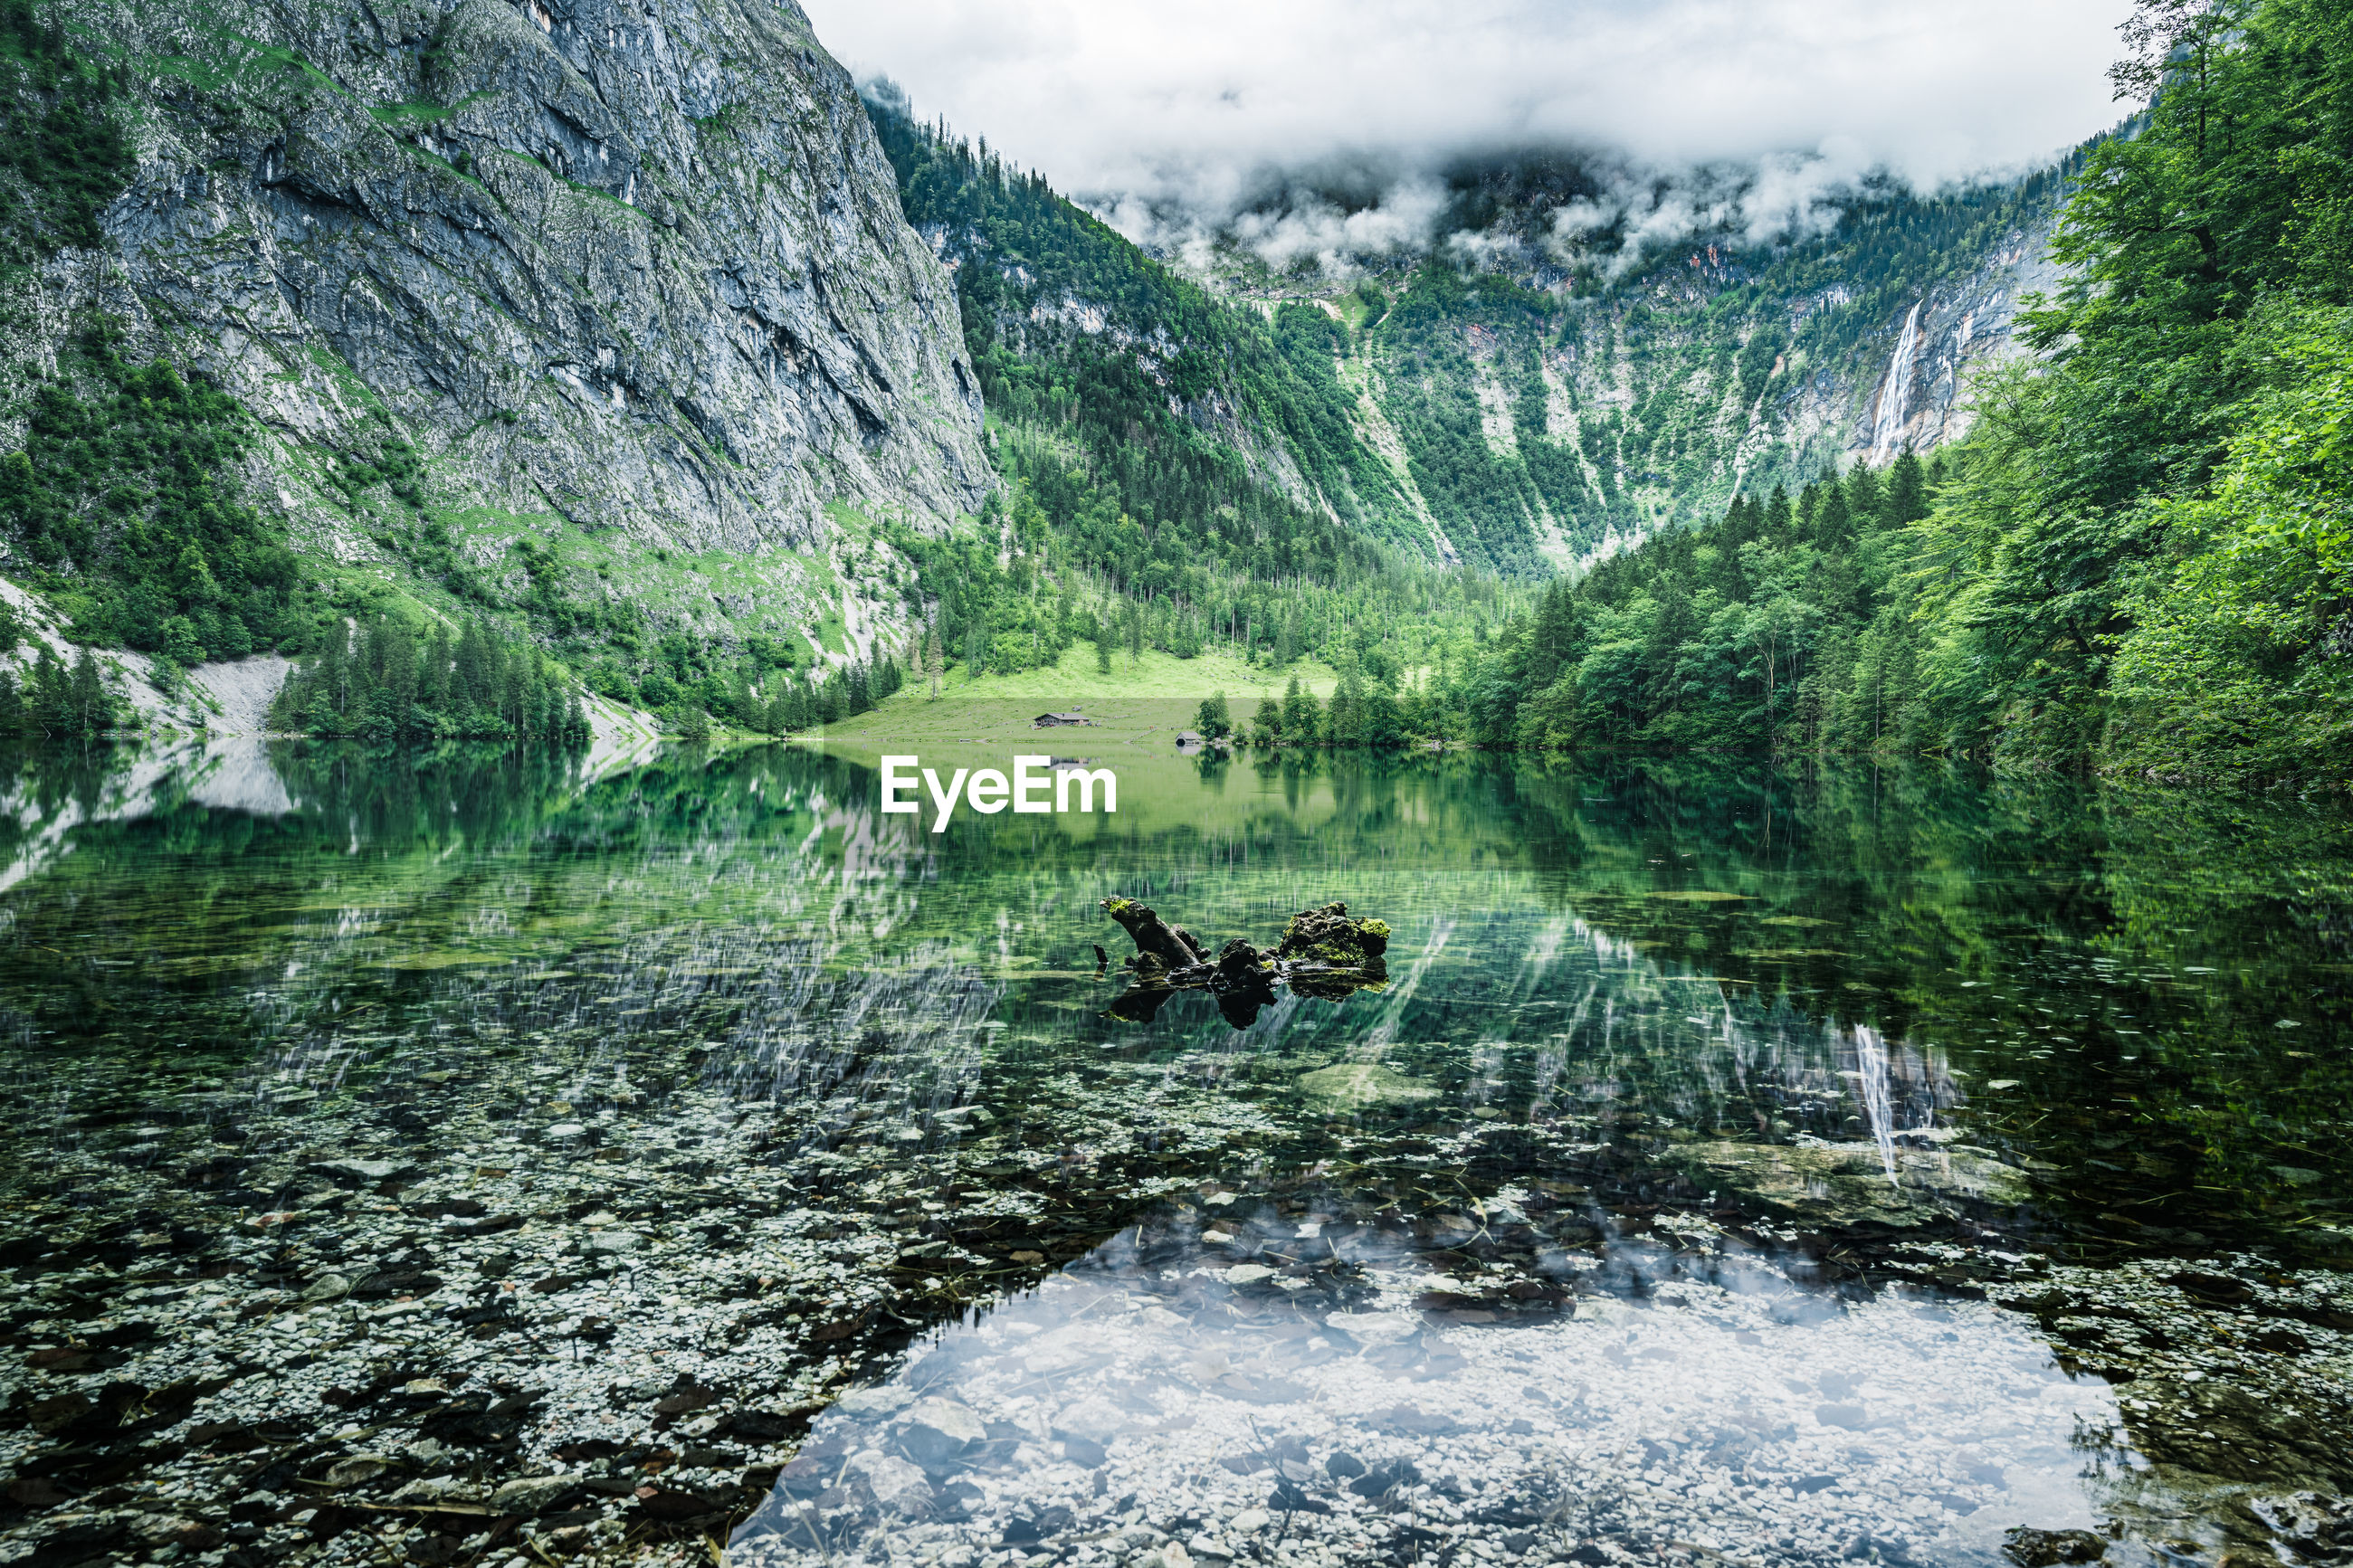 Atmospheric view of obersee lake and mountains, national park berchtesgaden, bavaria, germany